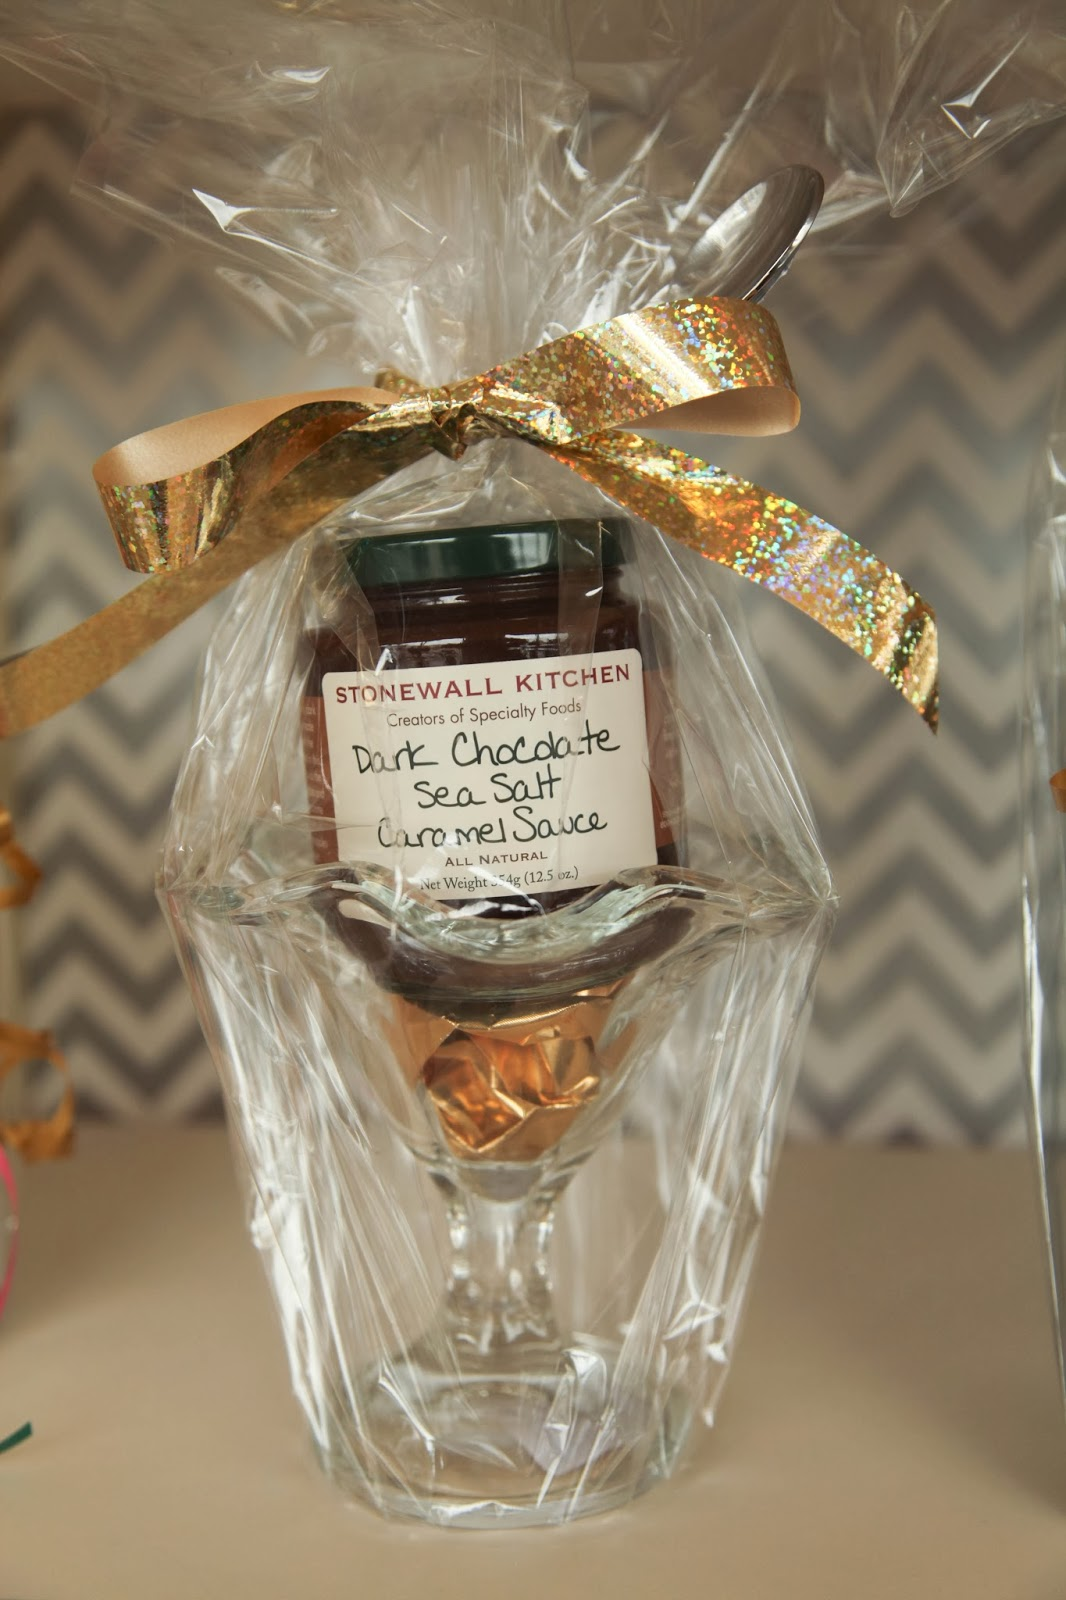 Stonewall Kitchen Dark Chocolate Sea Salt Caramel Sauce Area Rugs For Under Tables Your Blog Everything Quotfor Quot And